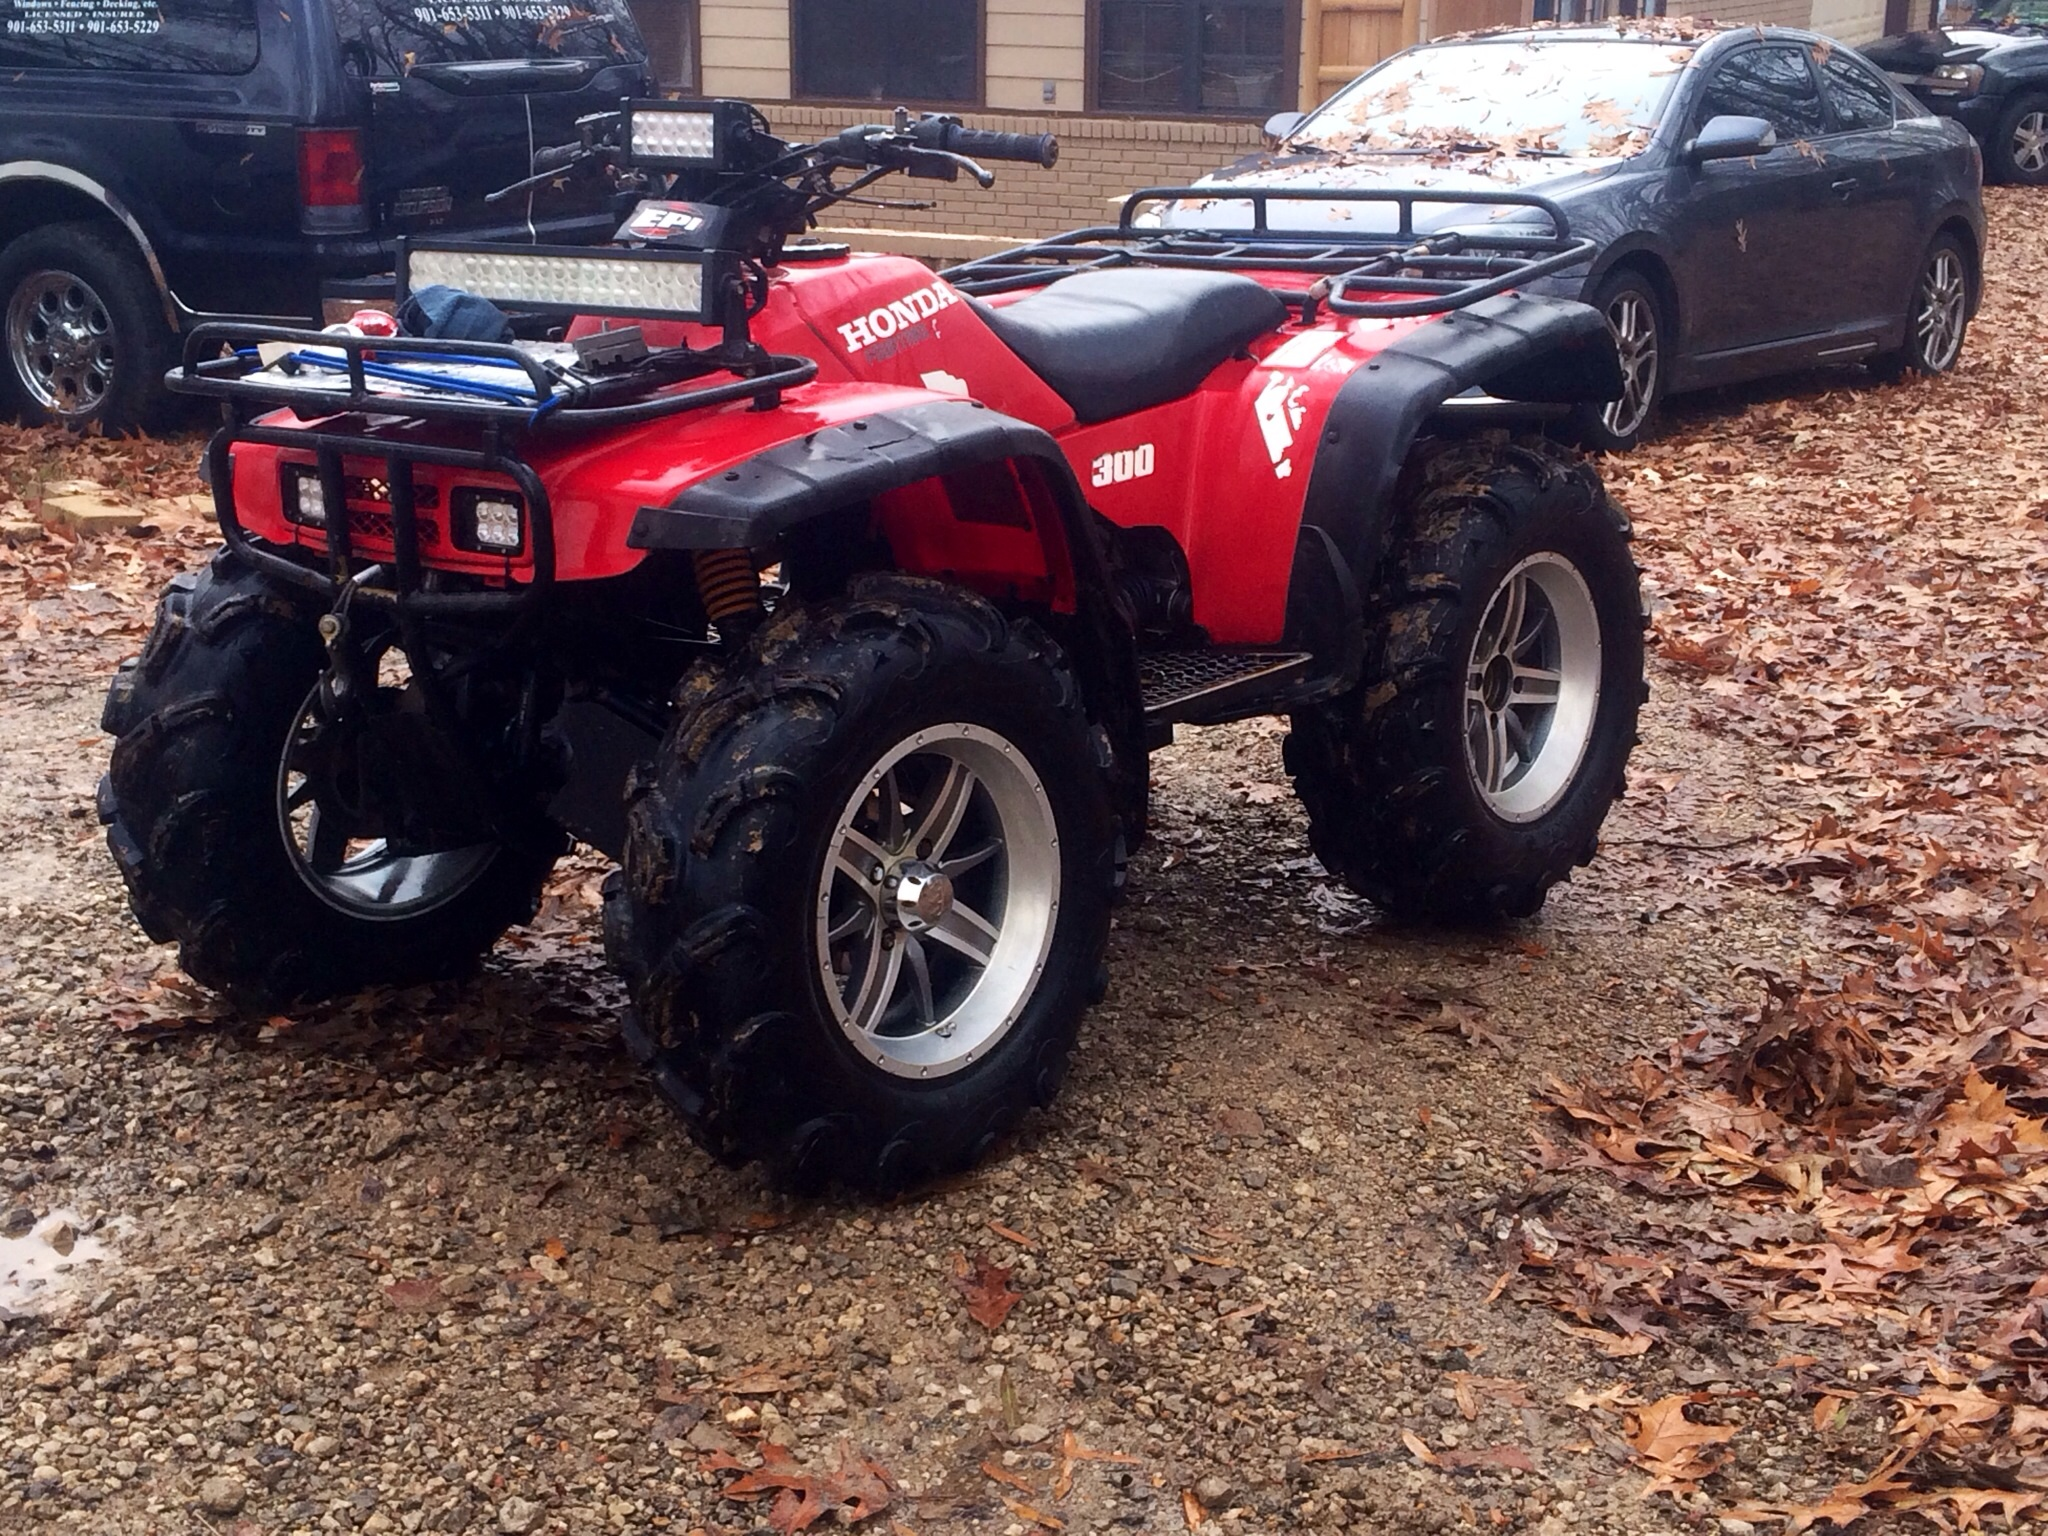 Honda Atv Forum View Single Post Post A Pic Up Of Your